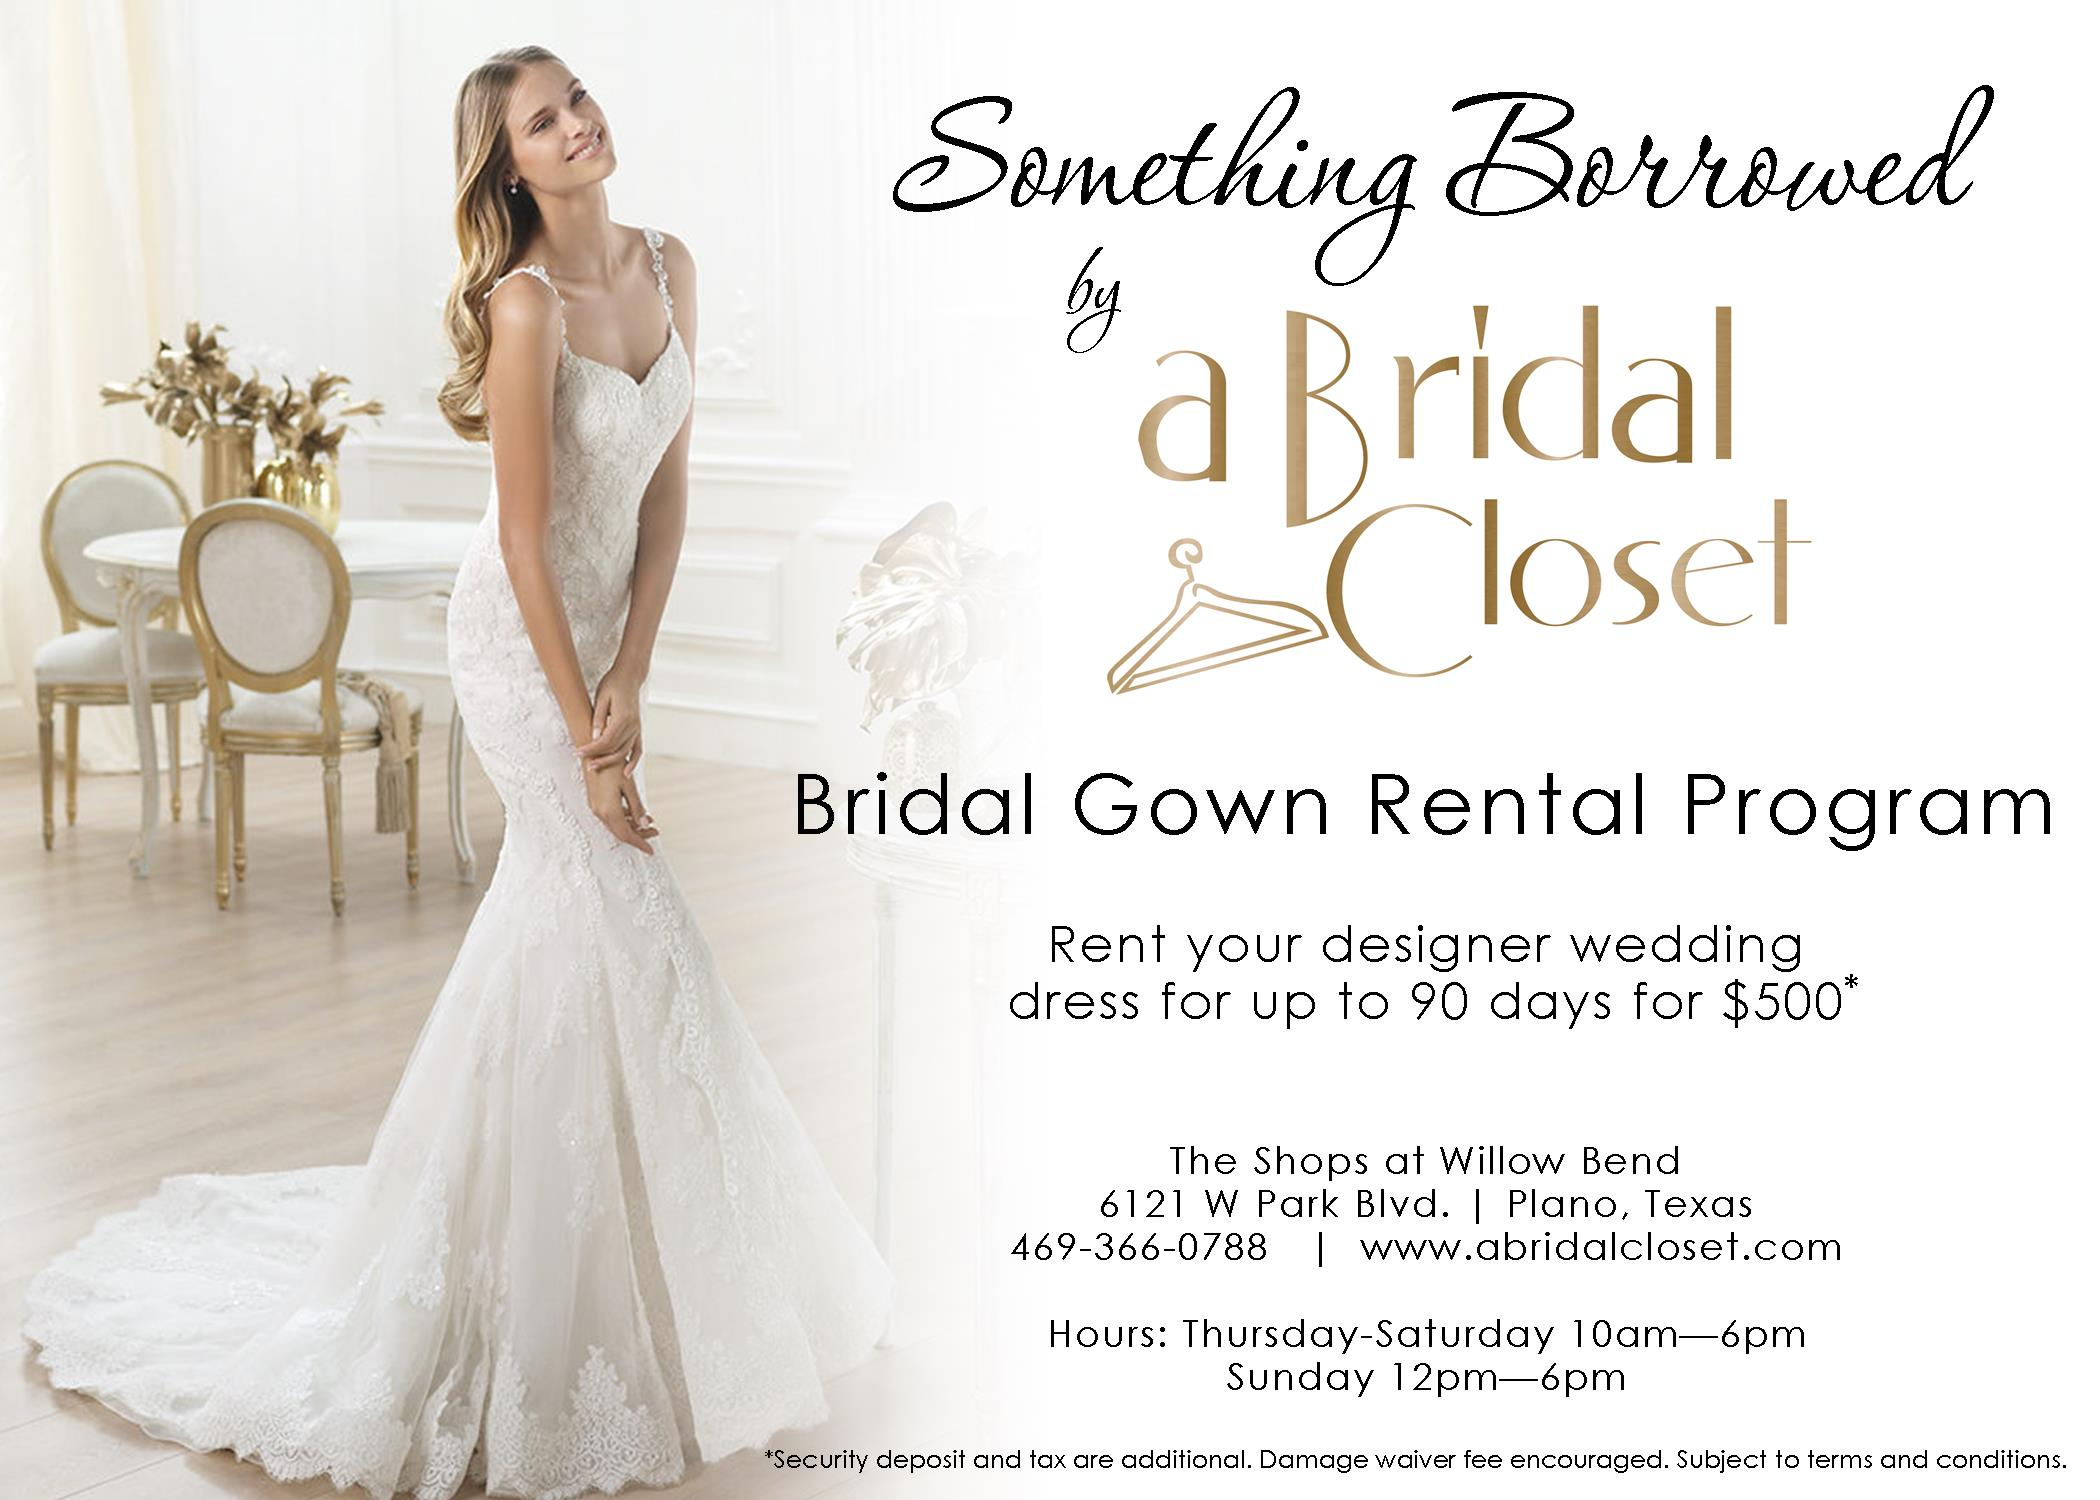 bridal closet wedding dress rentals CLICK HERE TO LEARN MORE ABOUT OUR BRIDAL GOWN RENTAL PROGRAM